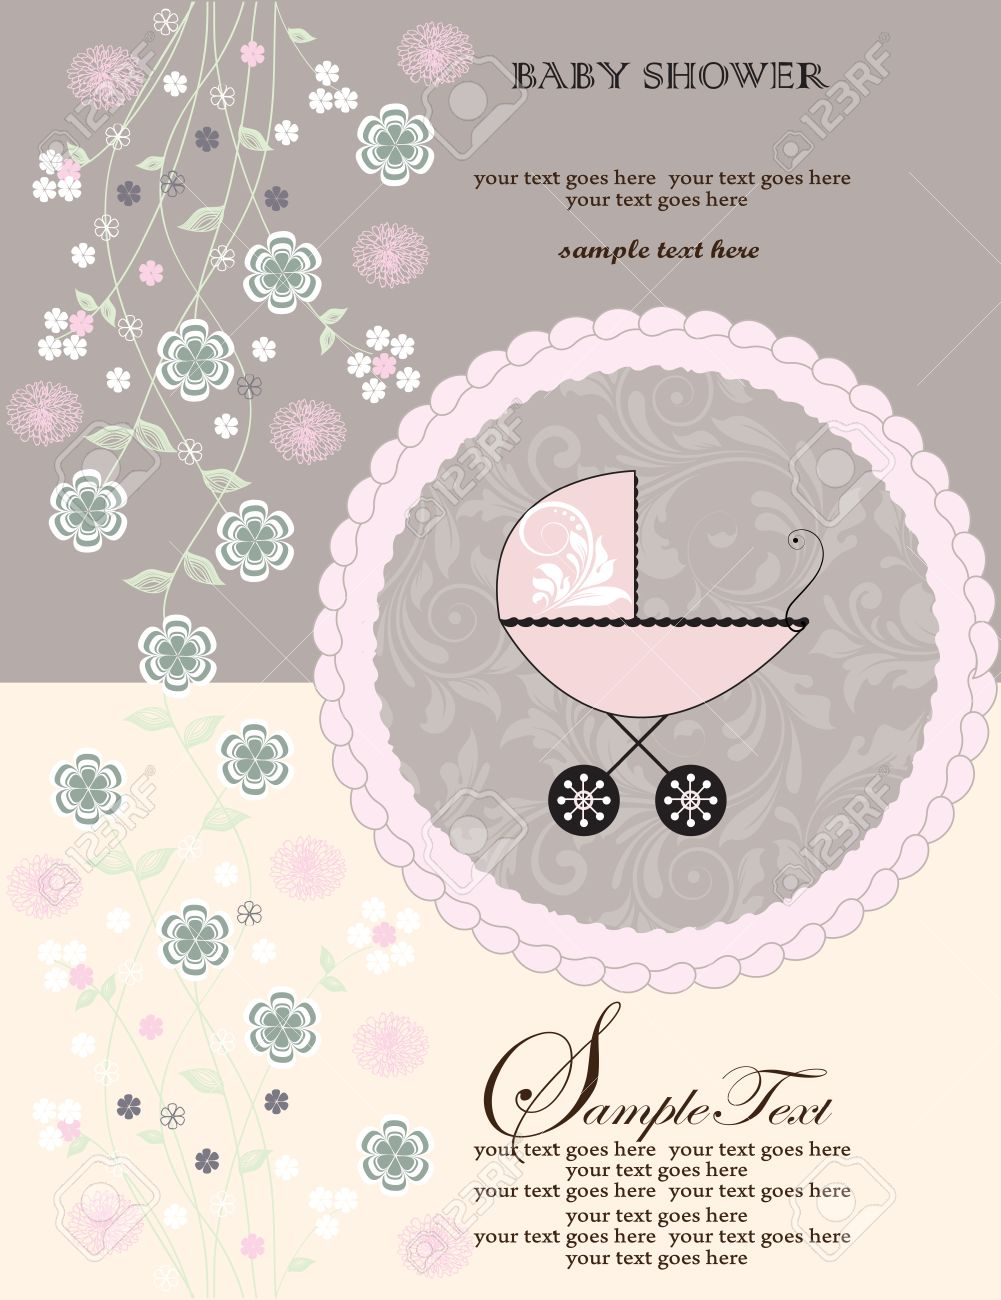 vintage baby shower invitation card with ornate elegant retro abstract floral design pink and green